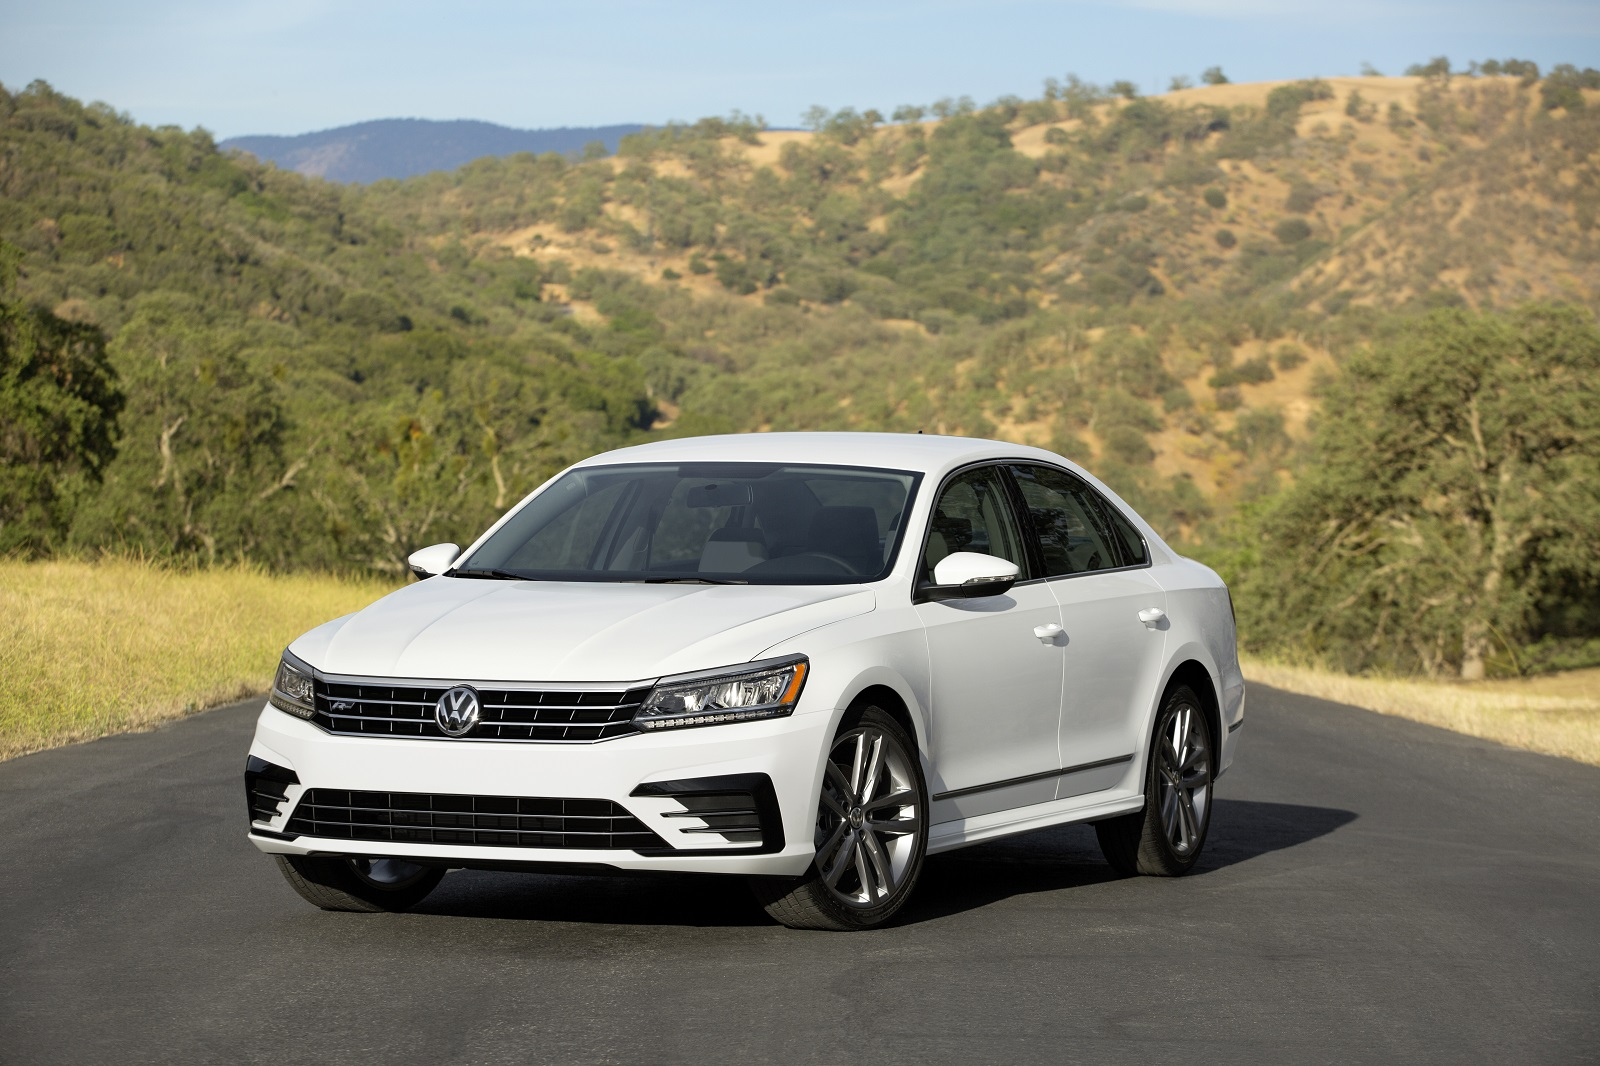 2014 Jetta Coil Wiring Diagram List Of Schematic Circuit 2013 Passat Vw Group Cars Had Highest Recall Rates Even Before Diesel Scandal Rh Greencarreports Com